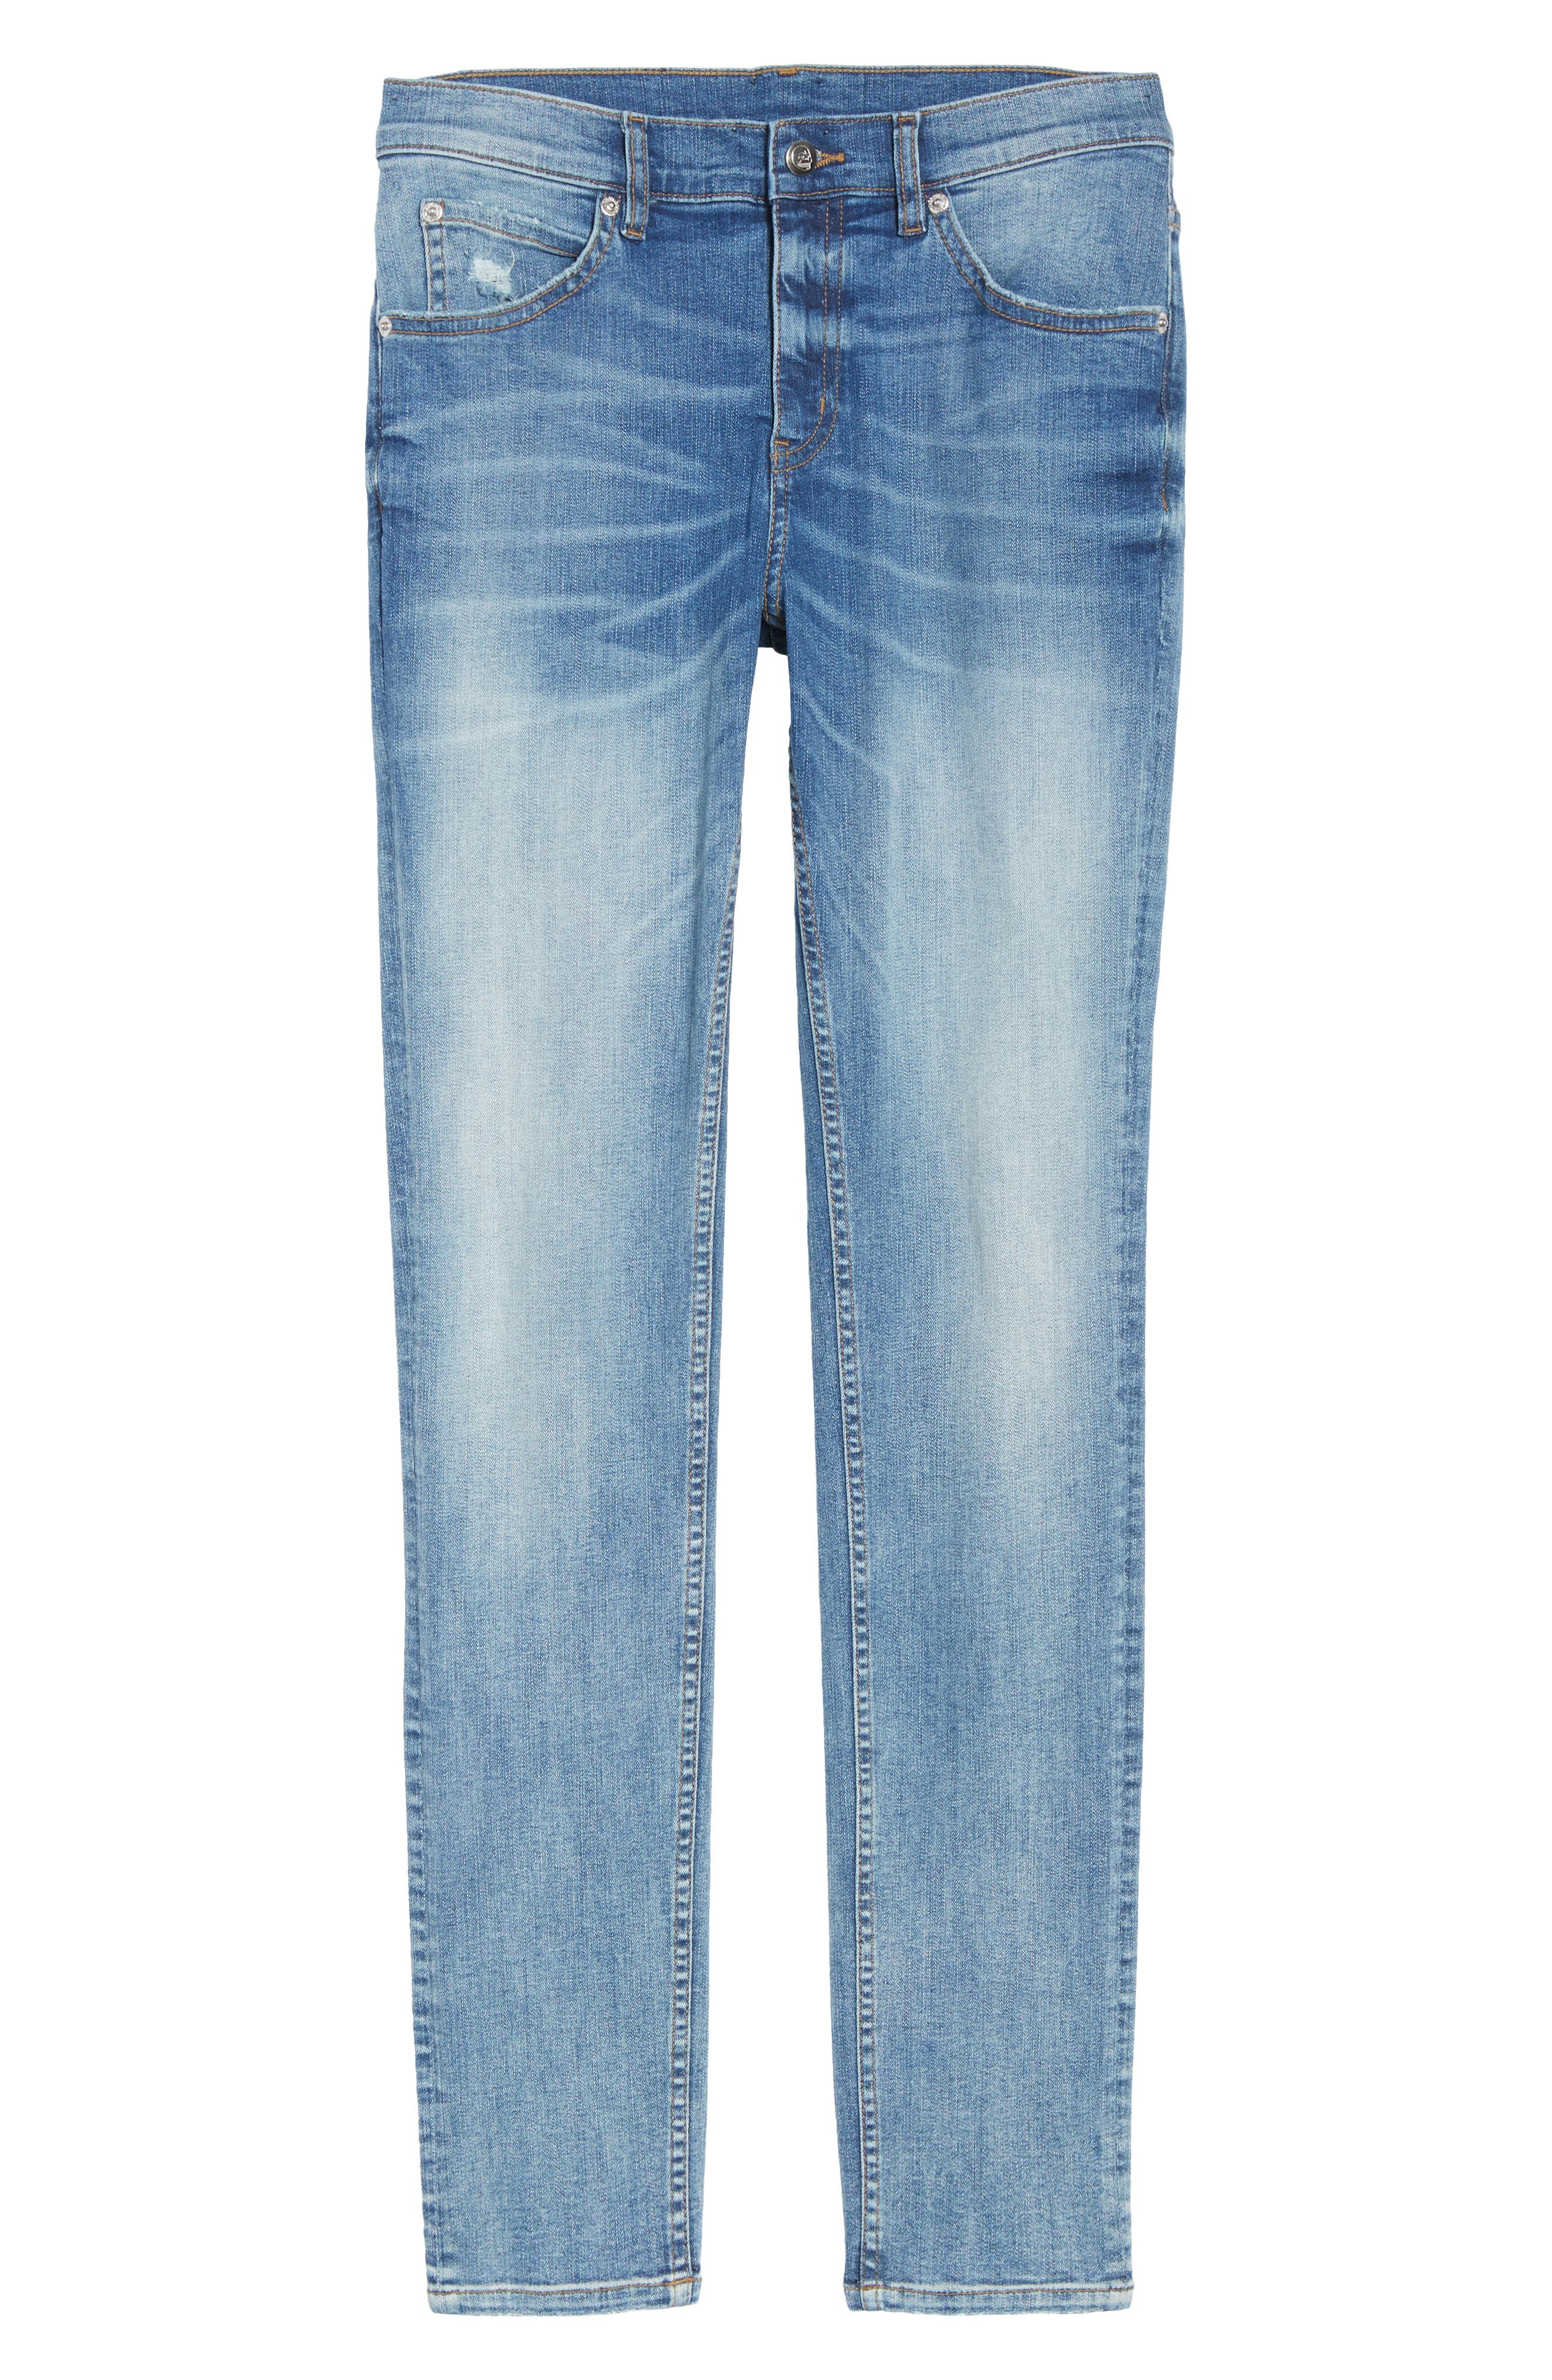 Tight Skinny Fit Jeans,                             Alternate thumbnail 6, color,                             428